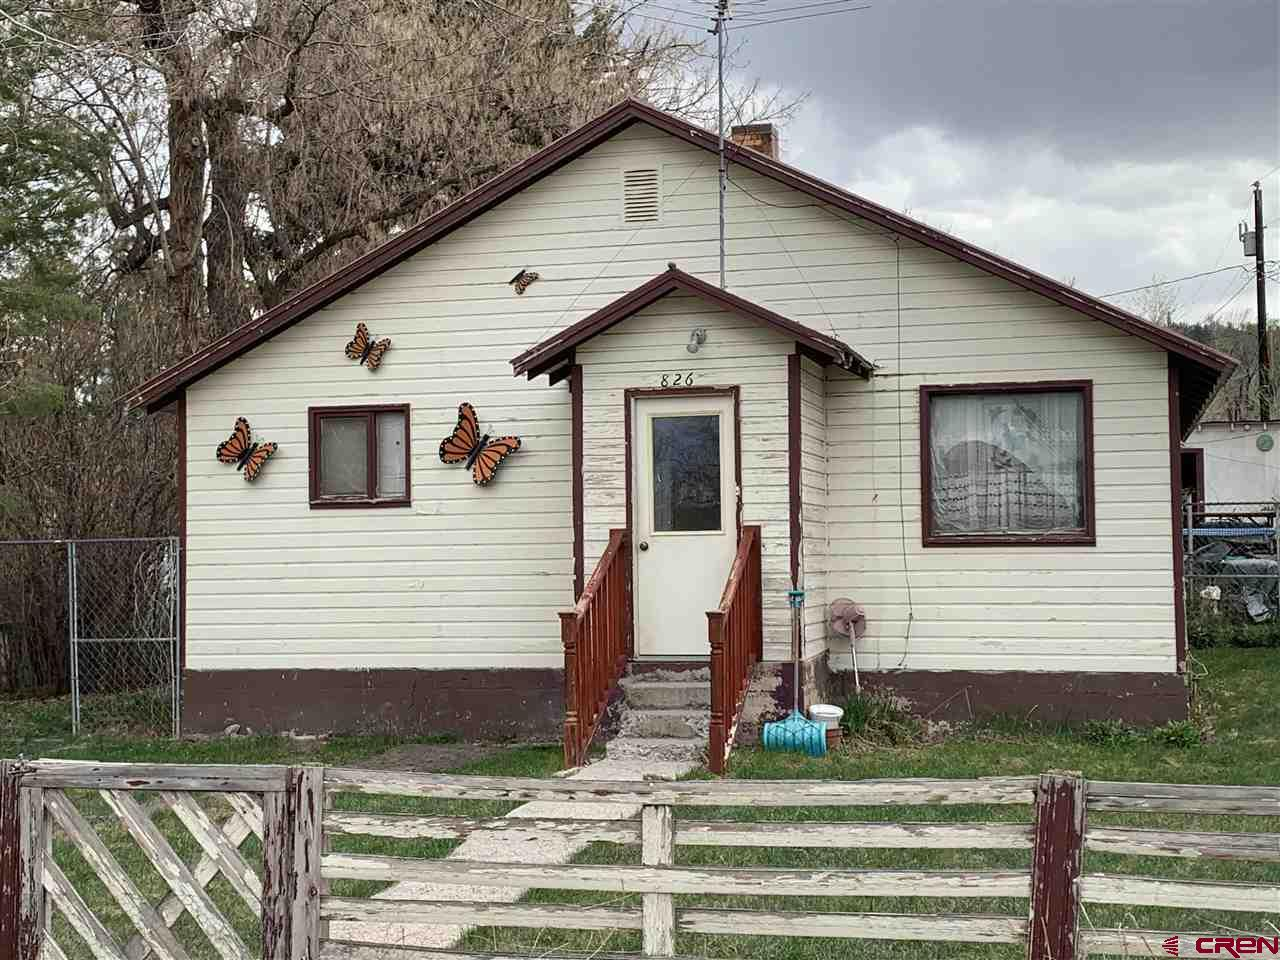 Location, Location.  Here is a quaint home located in downtown Ridgway on desirable Clinton Street.  It's only a couple blocks to the restaurants, theater and brewery.  The home needs a remodel but it has all the bones to be a fantastic place to hang the hat or an investment property.  The desirable location of this property presents a rare opportunity that won't last long.